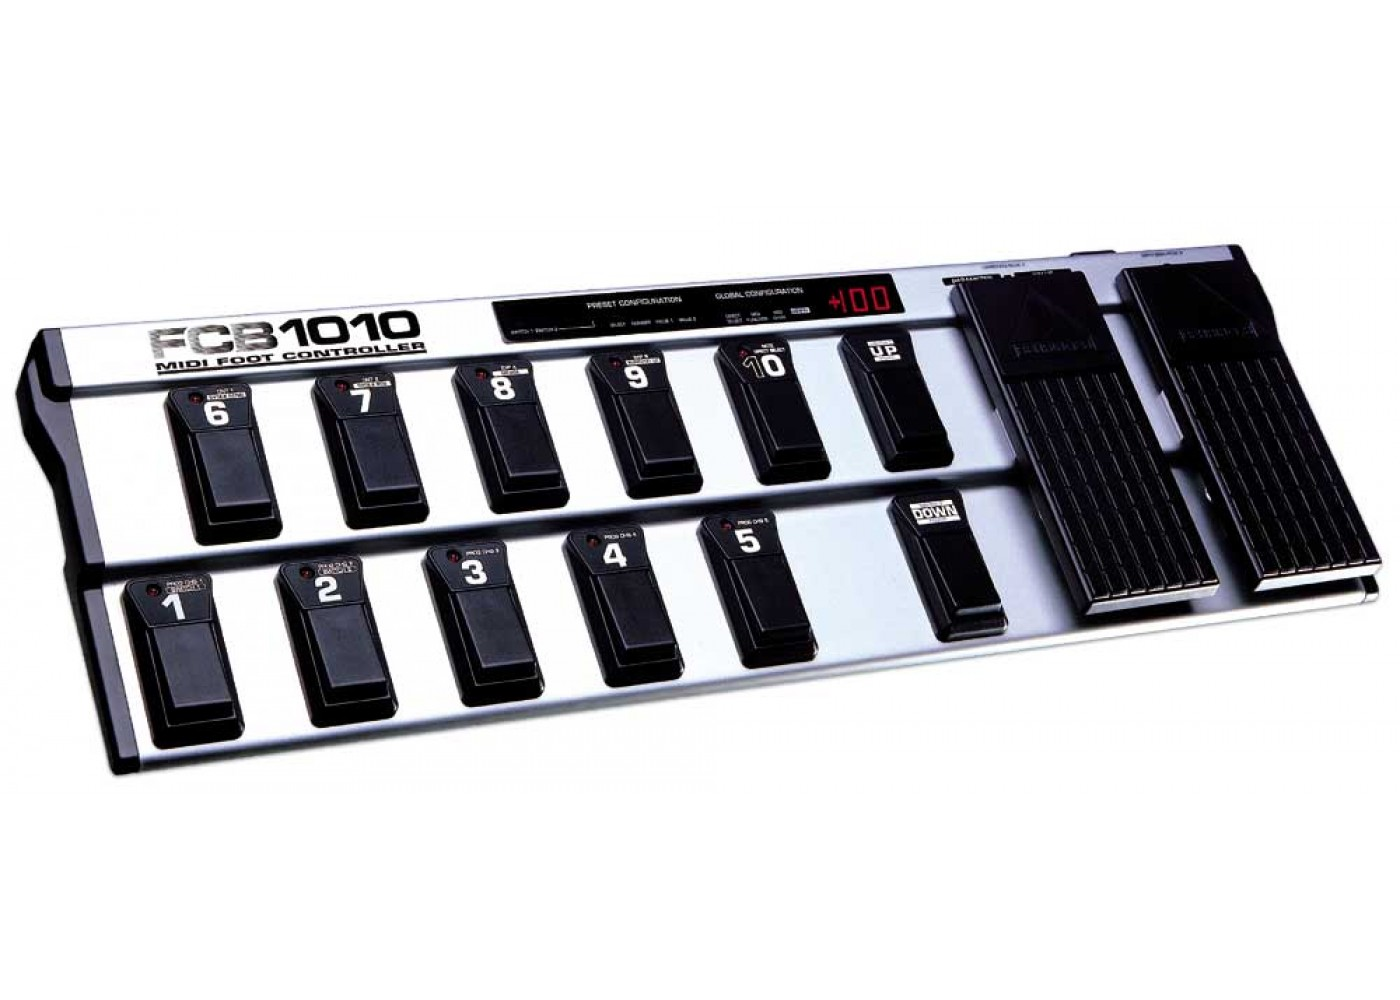 behringer guitar effects midi foot controller two expression pedals. Black Bedroom Furniture Sets. Home Design Ideas